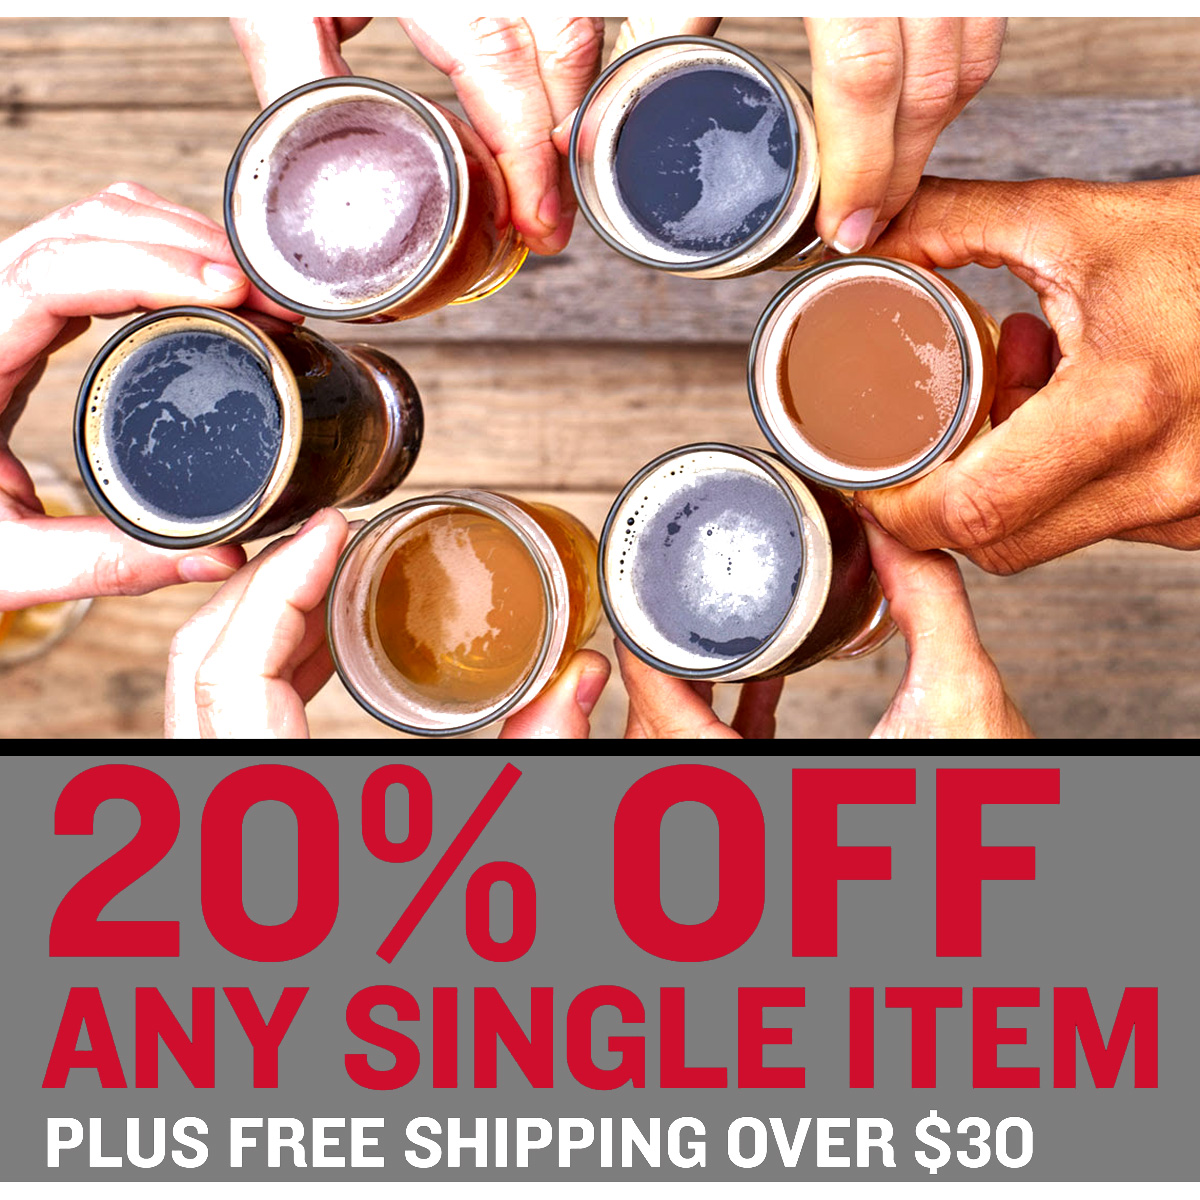 Home Wine Making Coupon Codes for Save 20% On A Single Item At Northern Brewer With this Promo Code Coupon Code